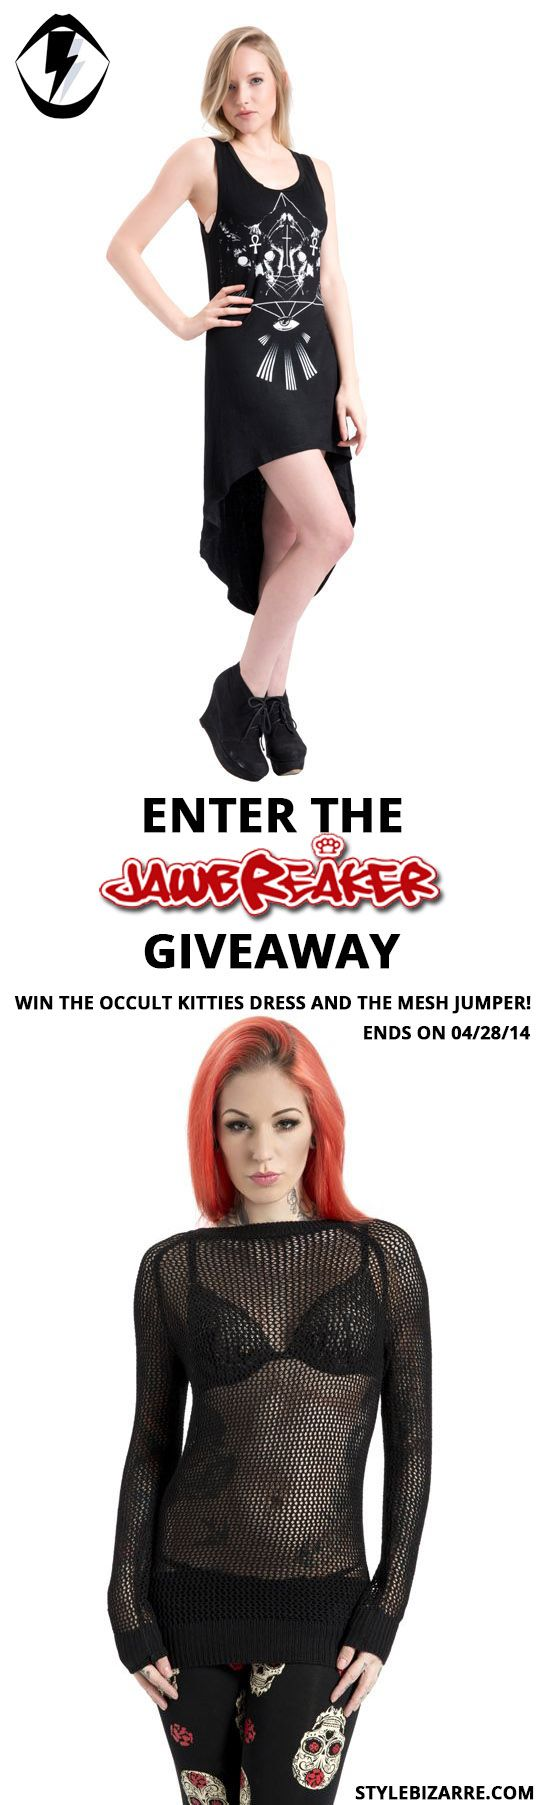 JawBreaker Alternative Clothing Giveaway! - Alternative Fashion & Lifestyle - styleBizarre